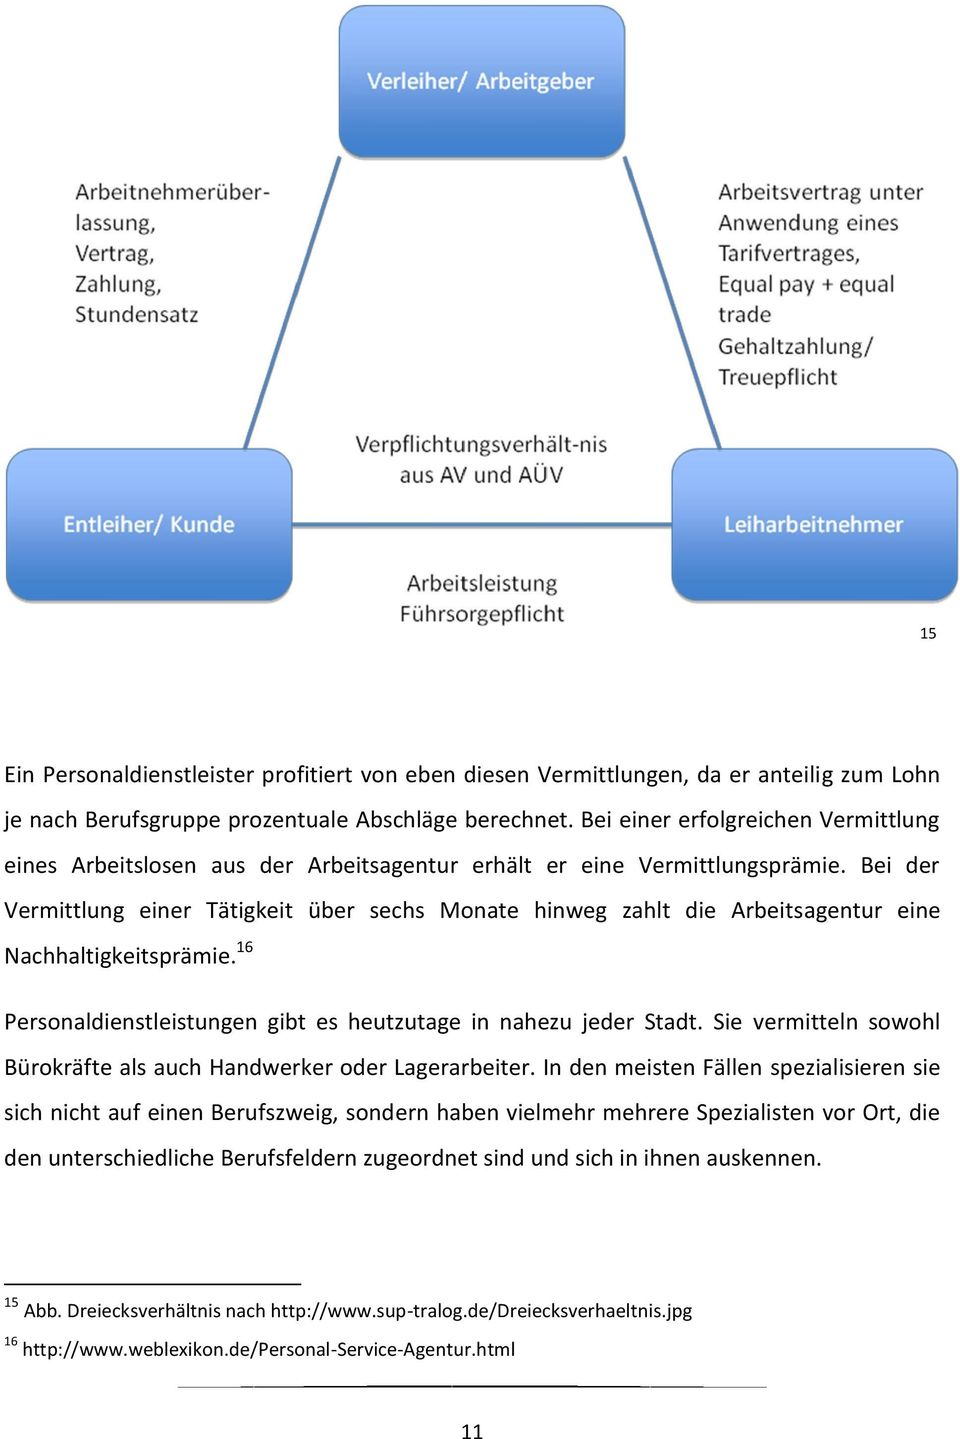 BACHELORARBEIT. Marketing von Personaldienstleistungen - PDF